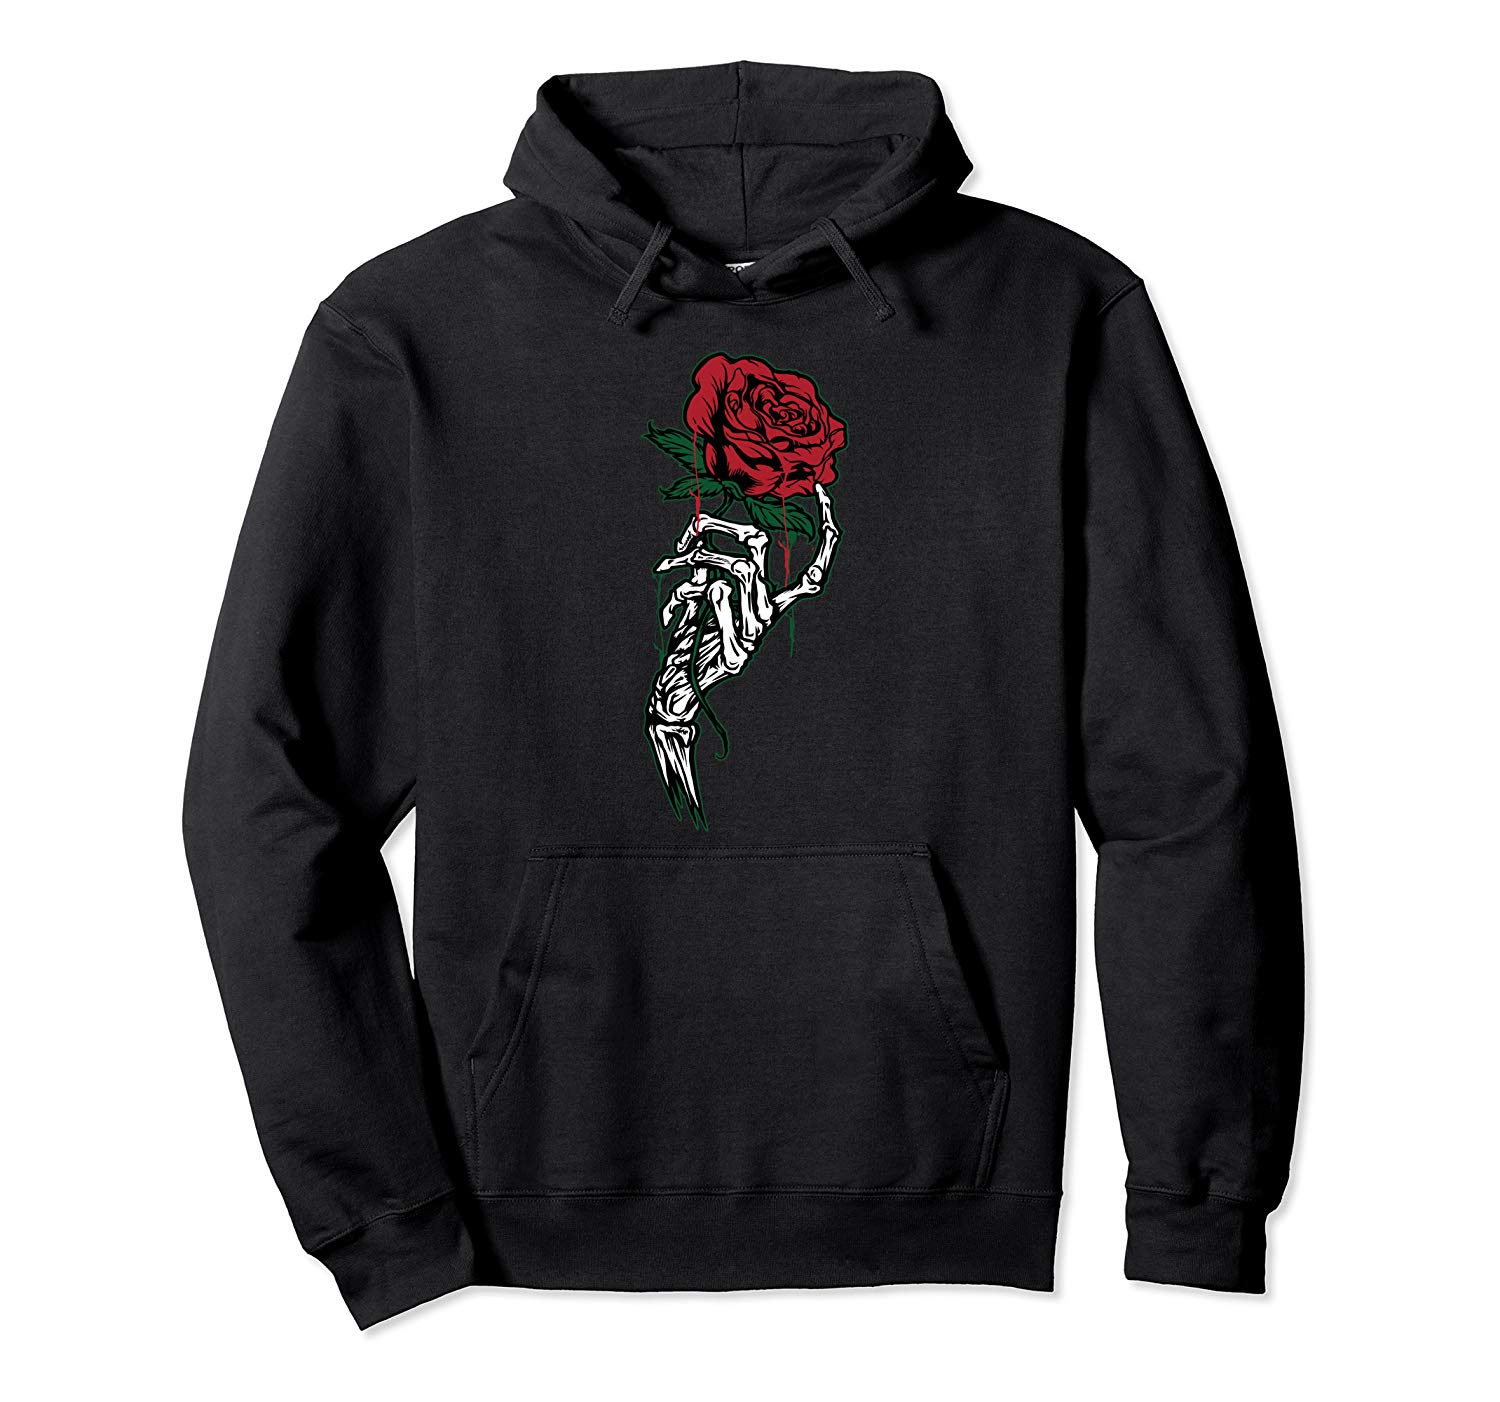 Rose Flower Tattoo - White Skeleton Hand Holding A Red Rose Pullover Hoodie & Swearshirt